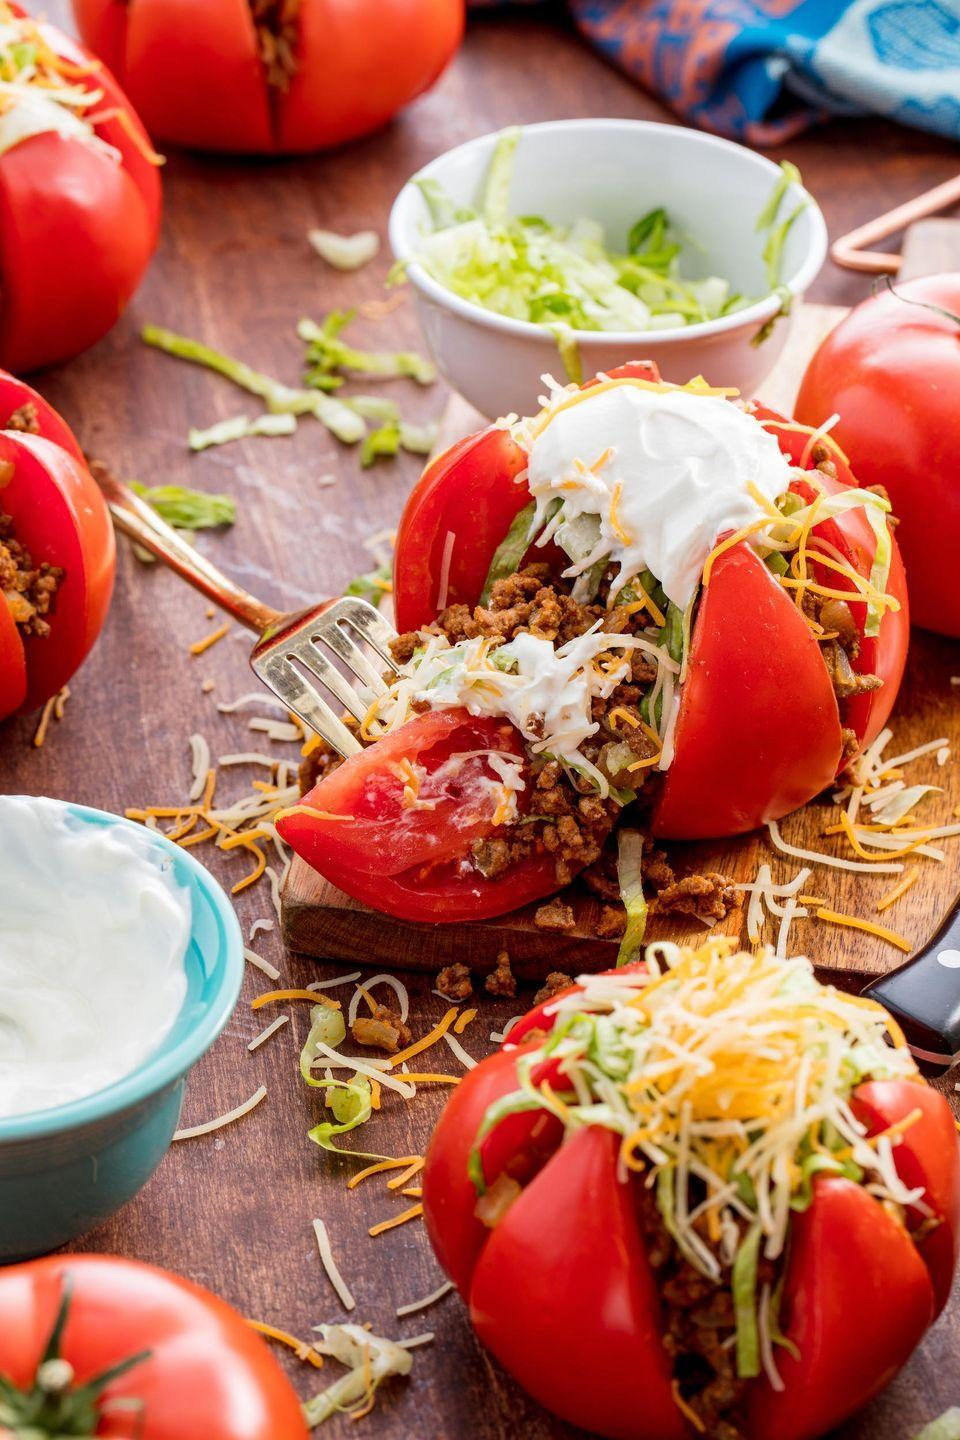 "<p>These are the prettiest low-carb tacos you'll ever see.</p><p>Get the recipe from <a href=""https://www.redbookmag.com/cooking/recipe-ideas/recipes/a54559/taco-tomatoes-recipe/"" rel=""nofollow noopener"" target=""_blank"" data-ylk=""slk:Delish"" class=""link rapid-noclick-resp"">Delish</a>. </p>"